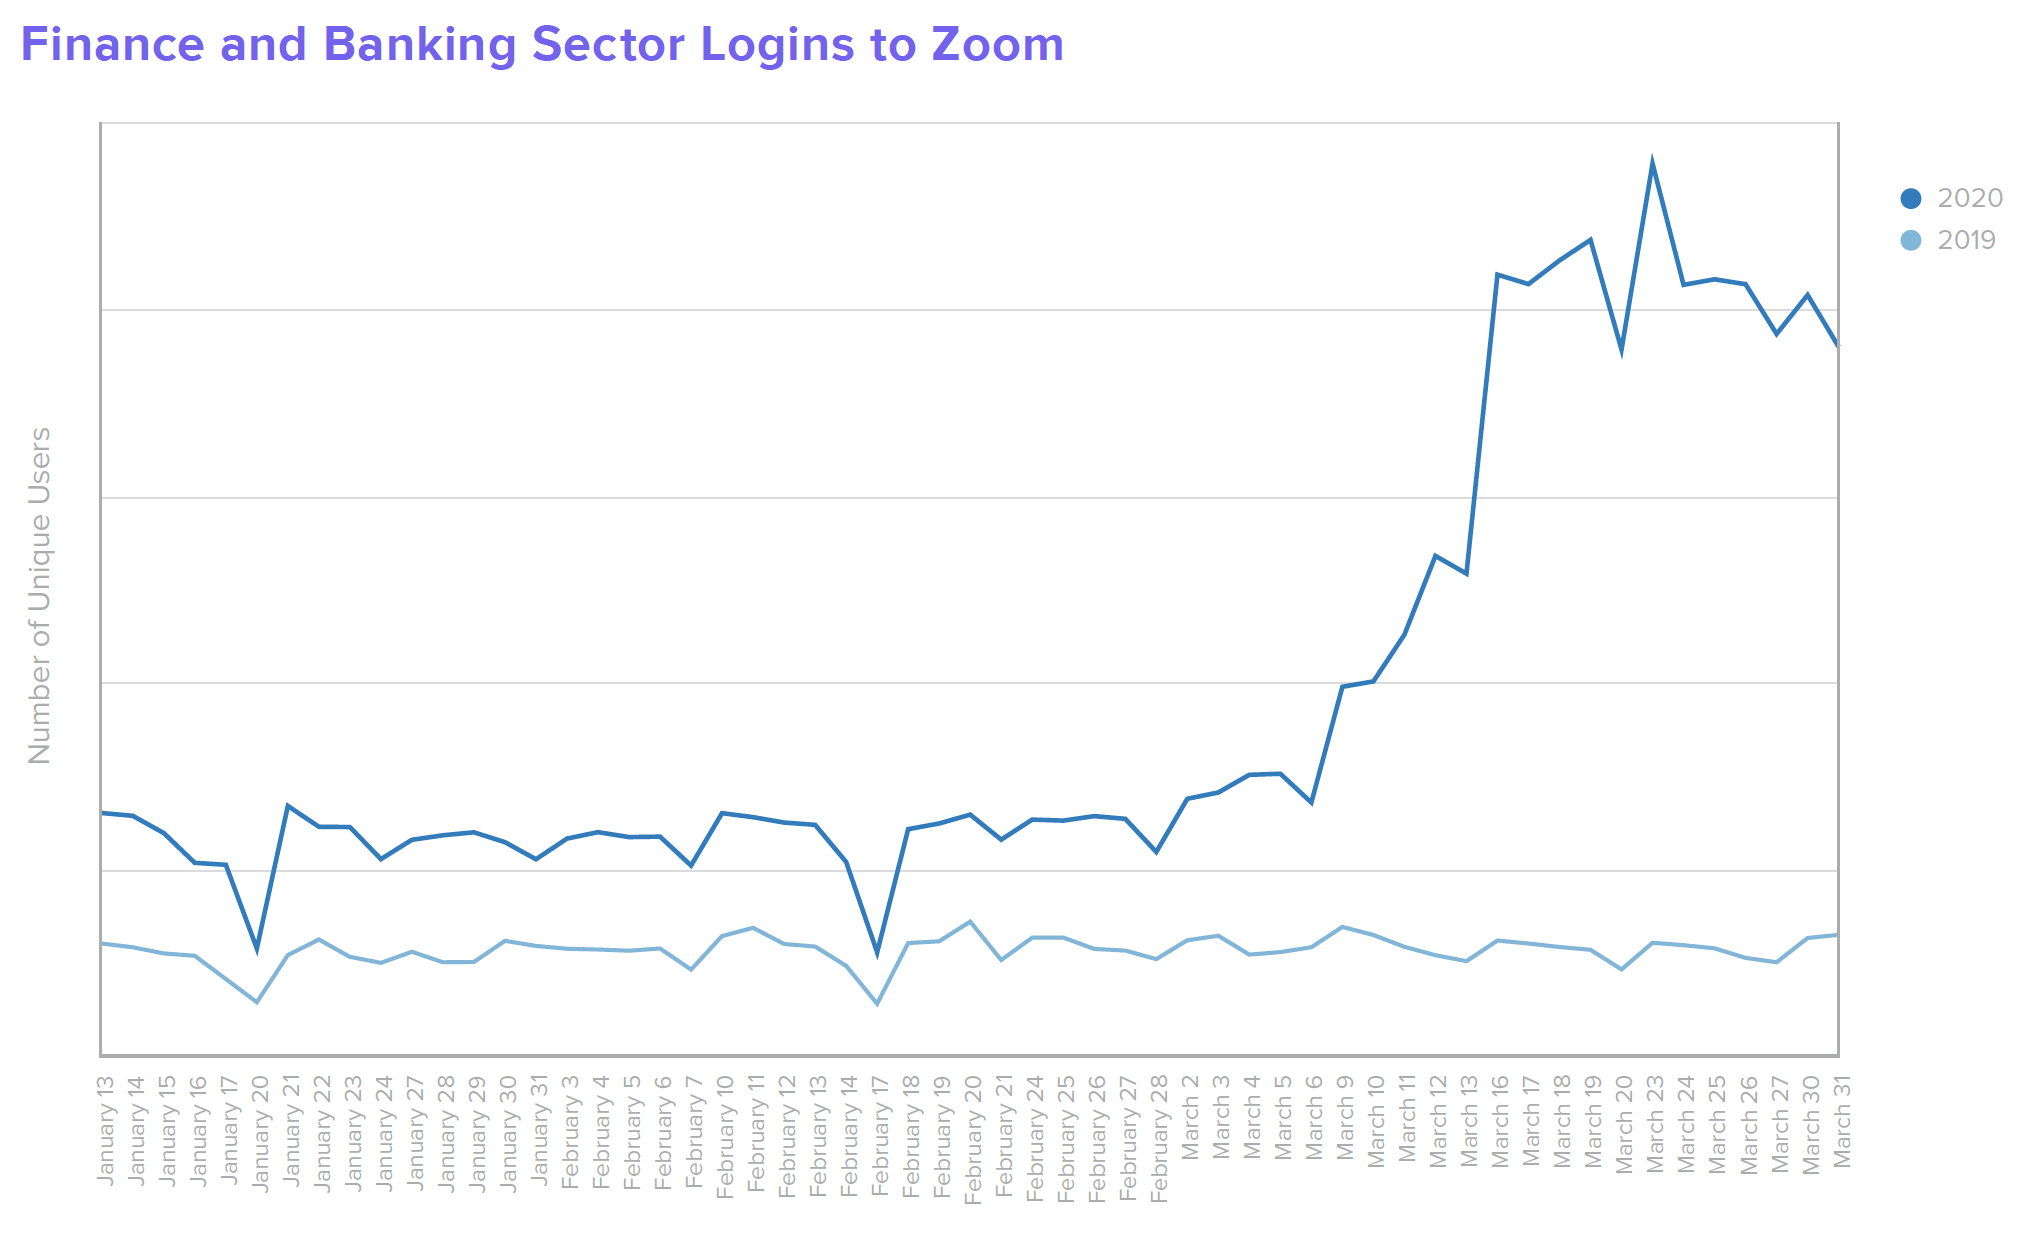 B W Finance Finance and Banking Sector Logins to Zoom